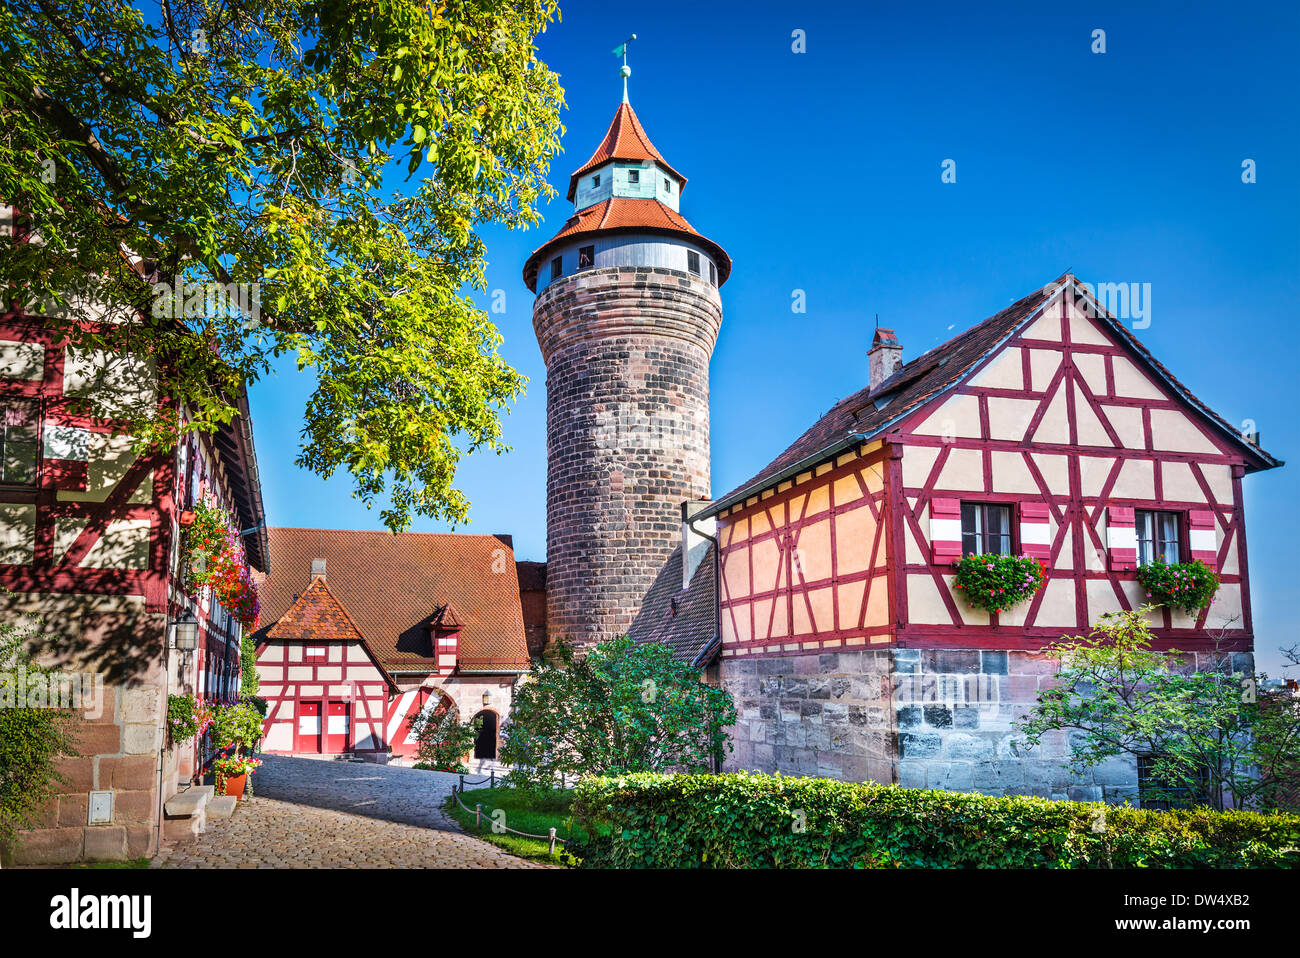 Nuremberg Castle in Nuremberg, Germany. - Stock Image